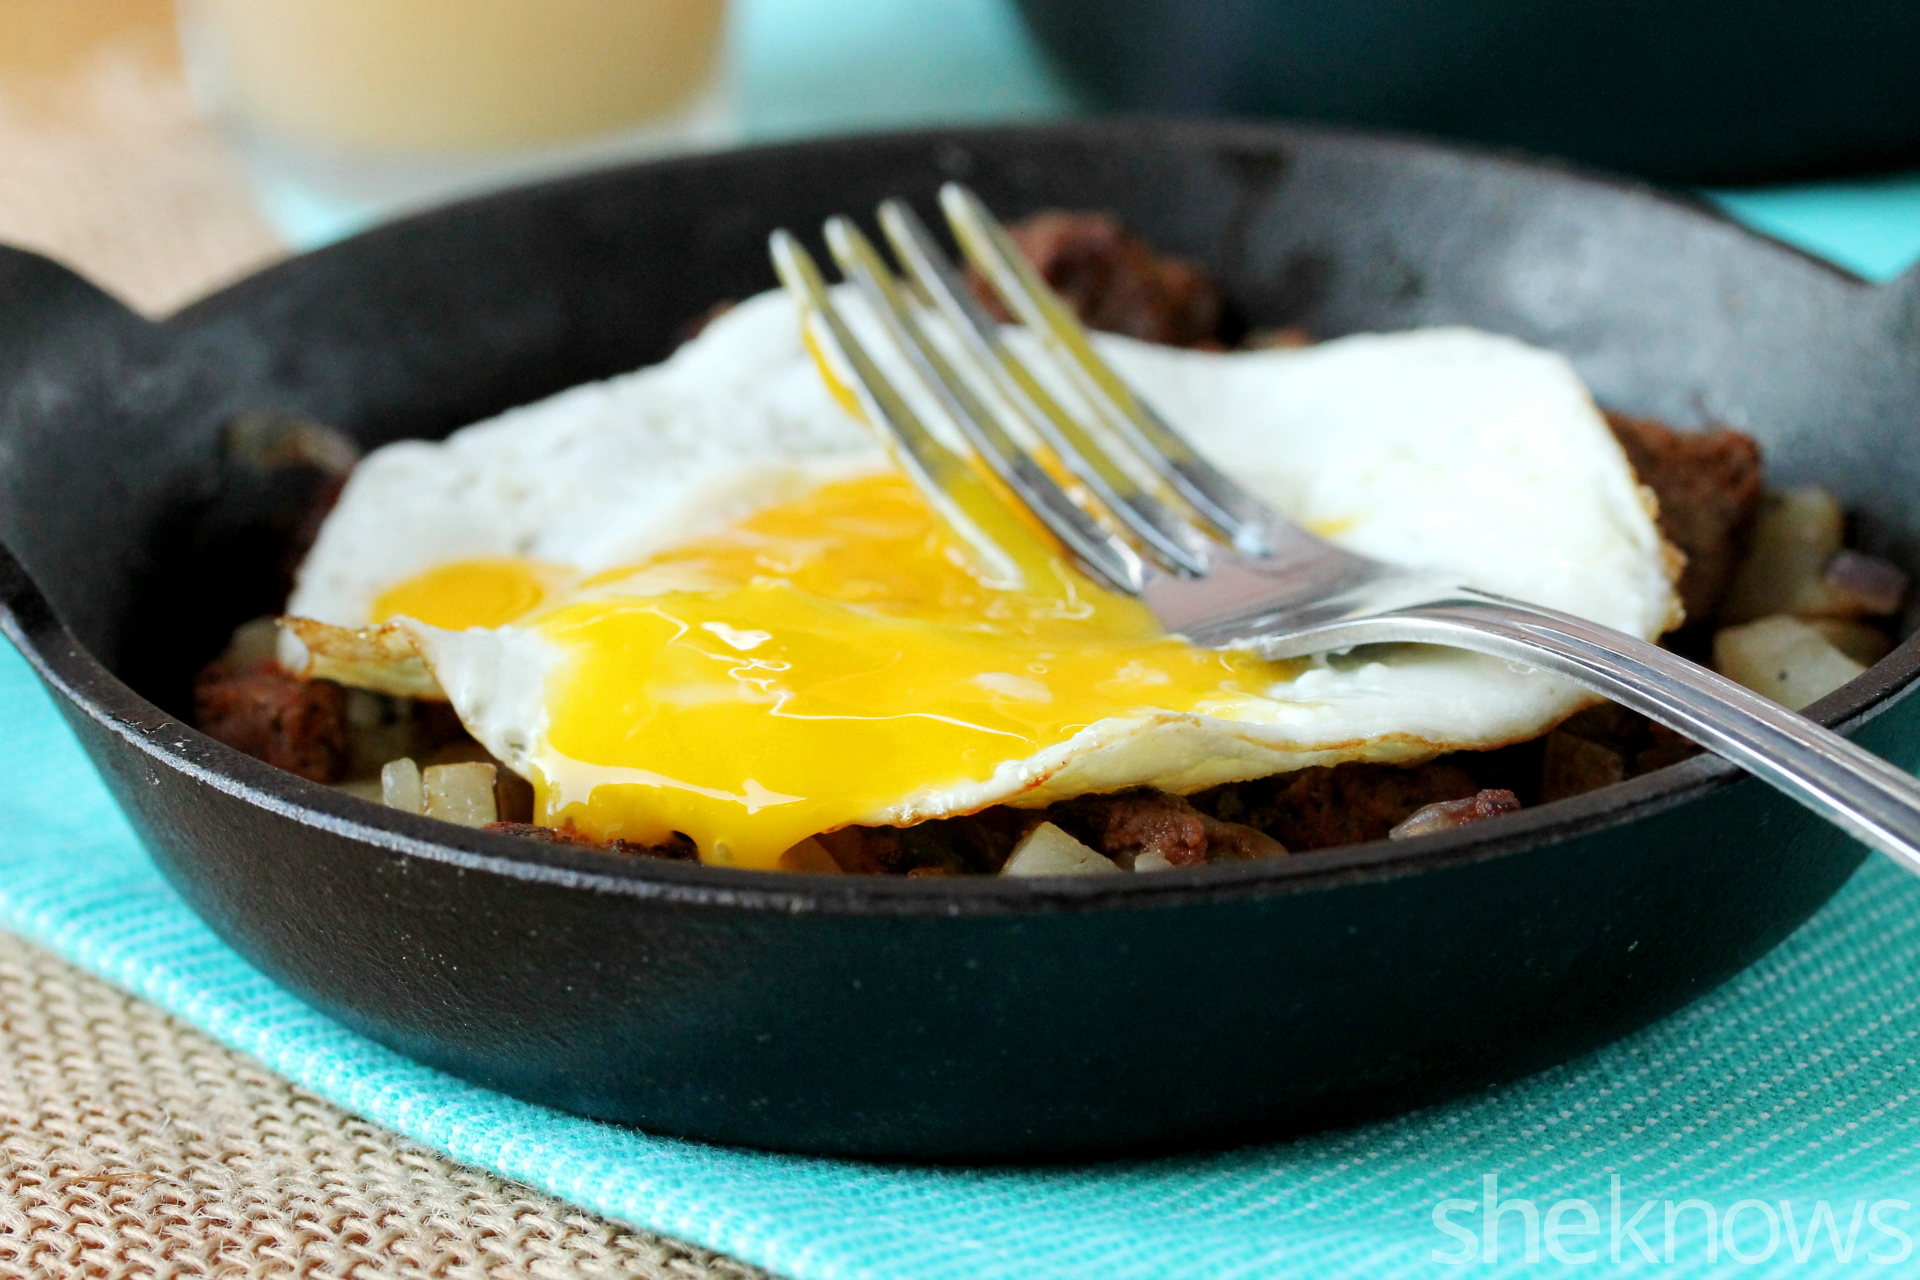 egg in meatloaf and hash